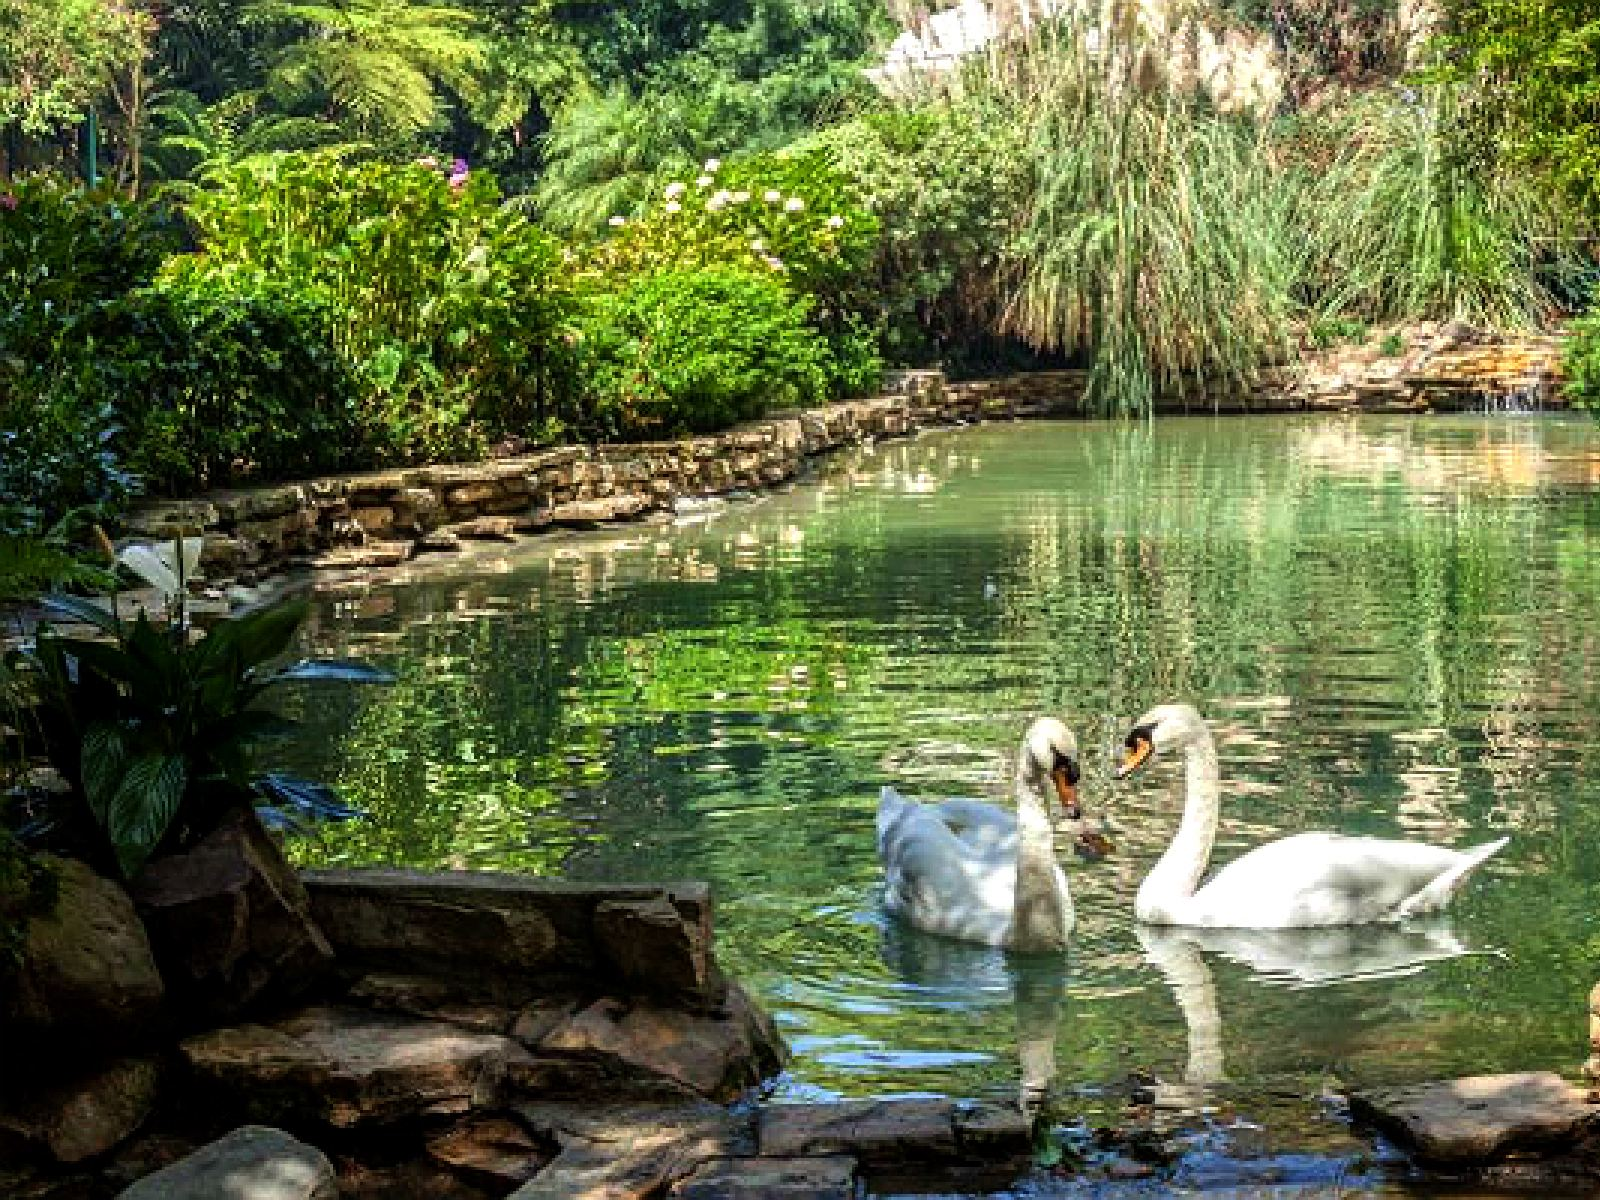 The famous swans of Hotel Bel-Air   Instagram by @hotelbelair